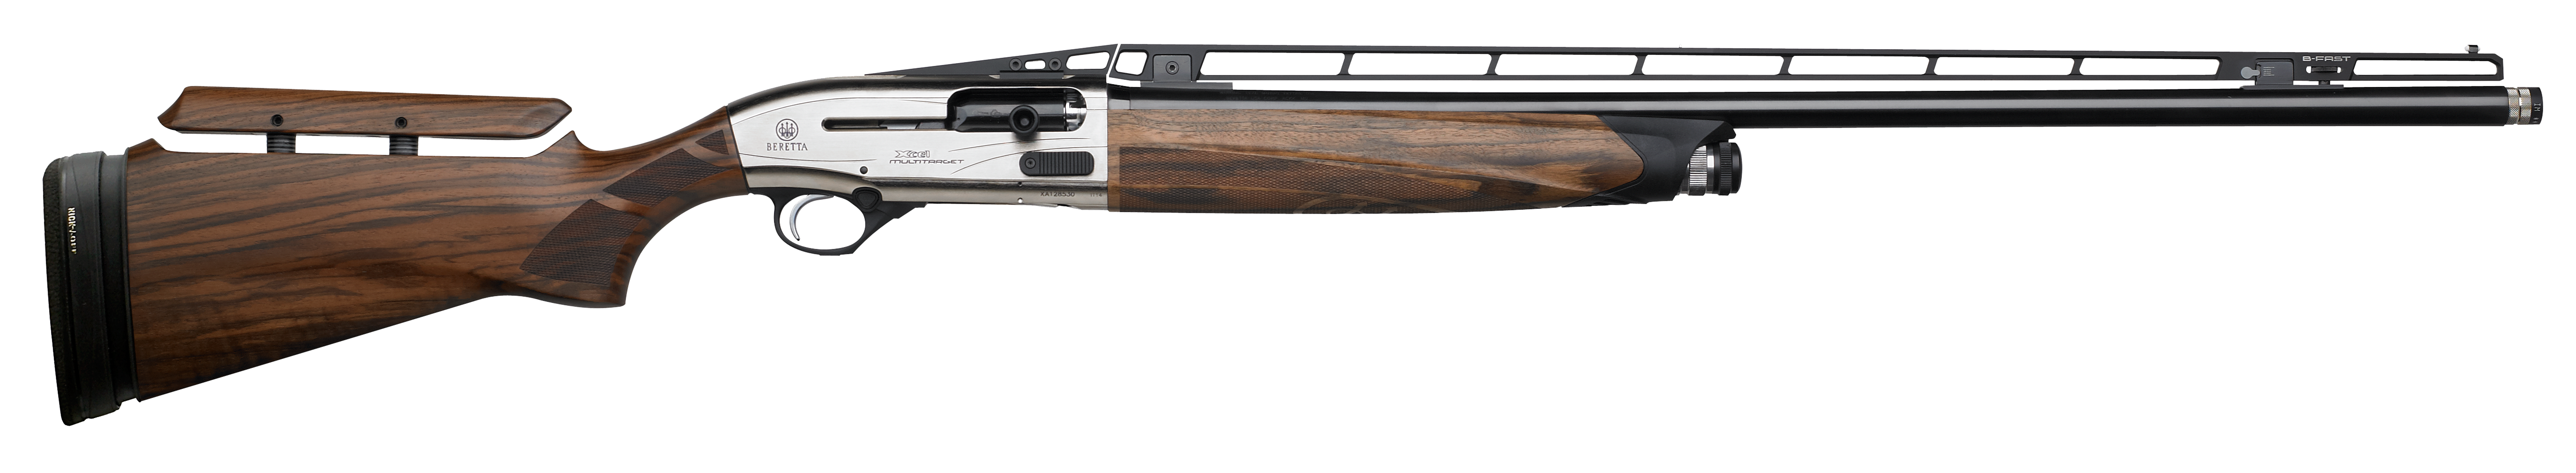 Beretta A400 Xcel Multitarget Semi-Auto Shotgun 3'' 12 Gauge 30'' Silver Anodized - Walnut Adjustable